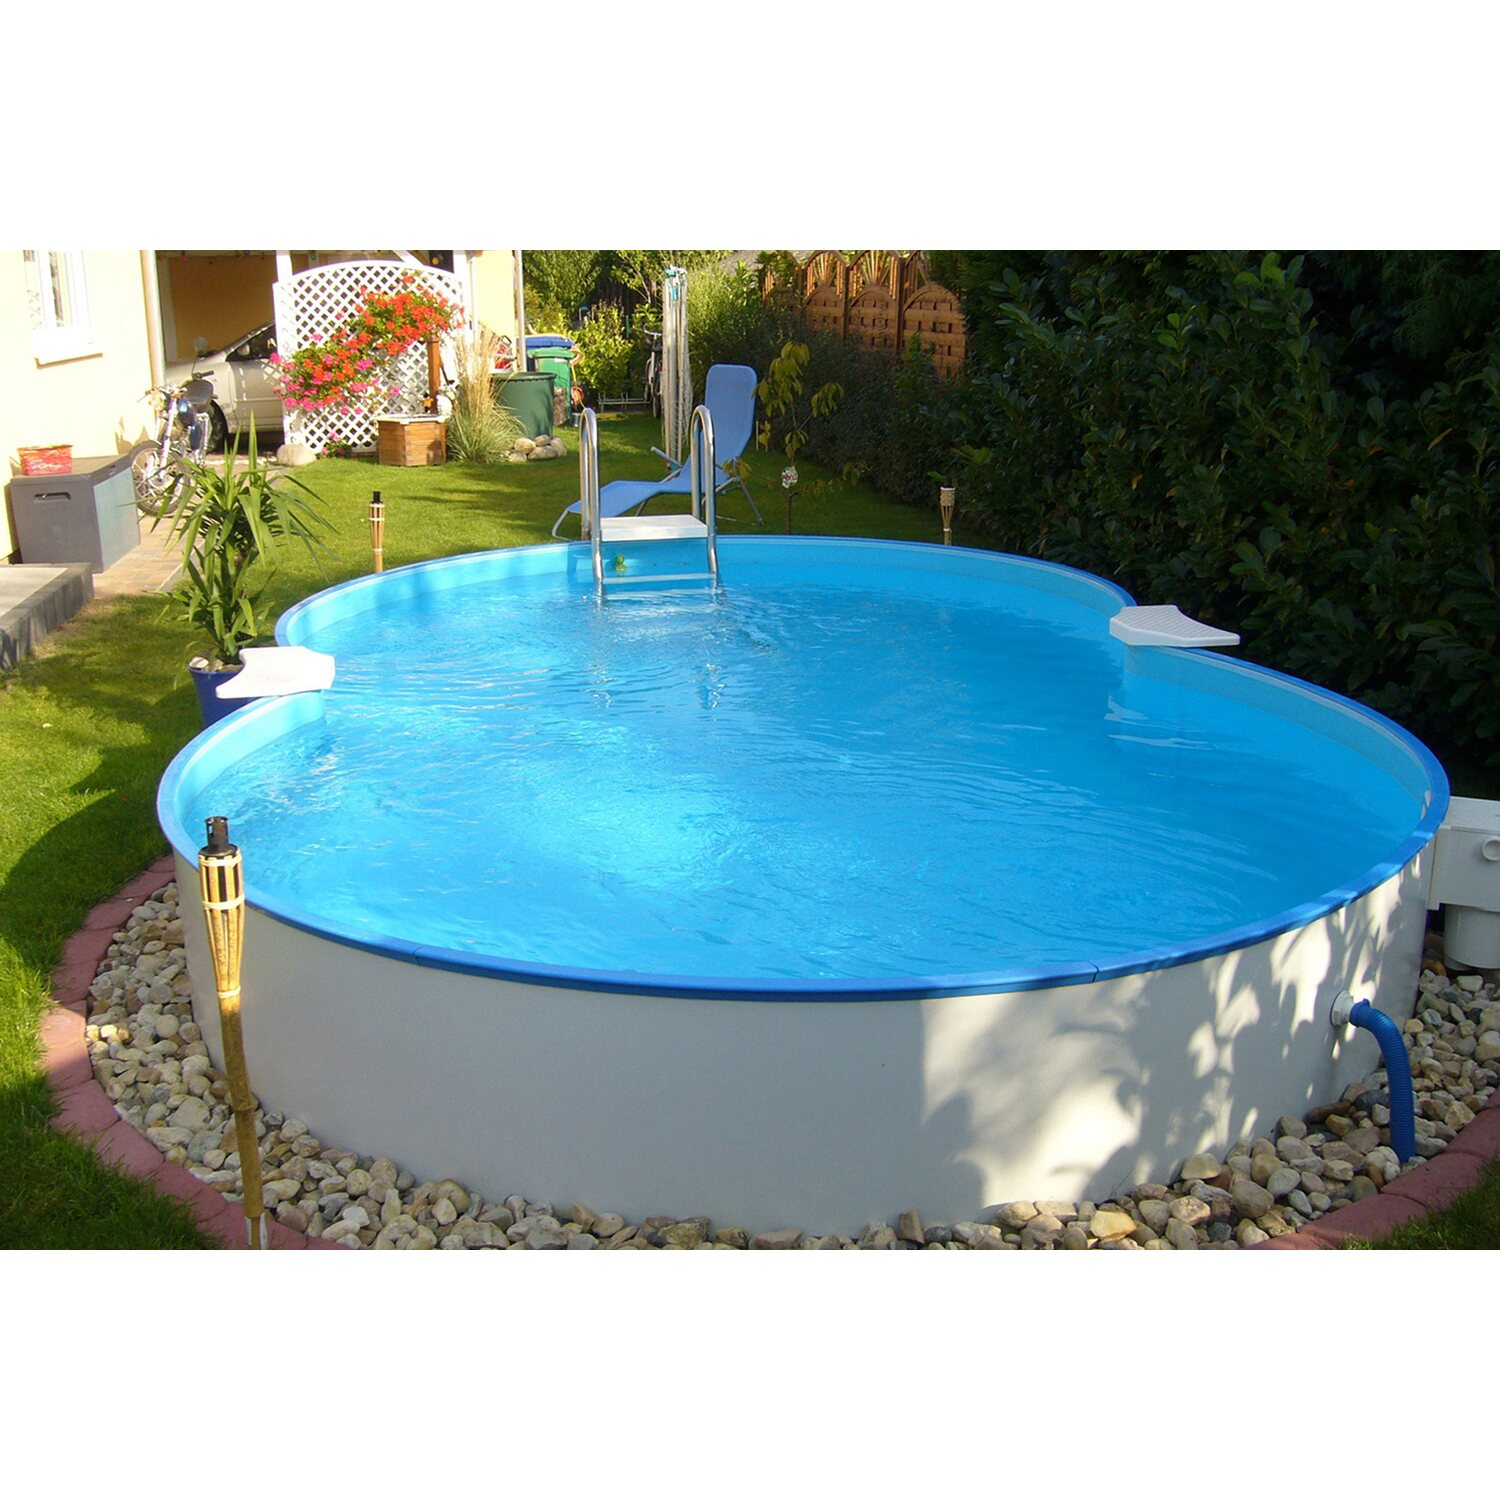 Stahlwand pool set cannes aufstellbecken achtform 625 cm x for Obi pool set